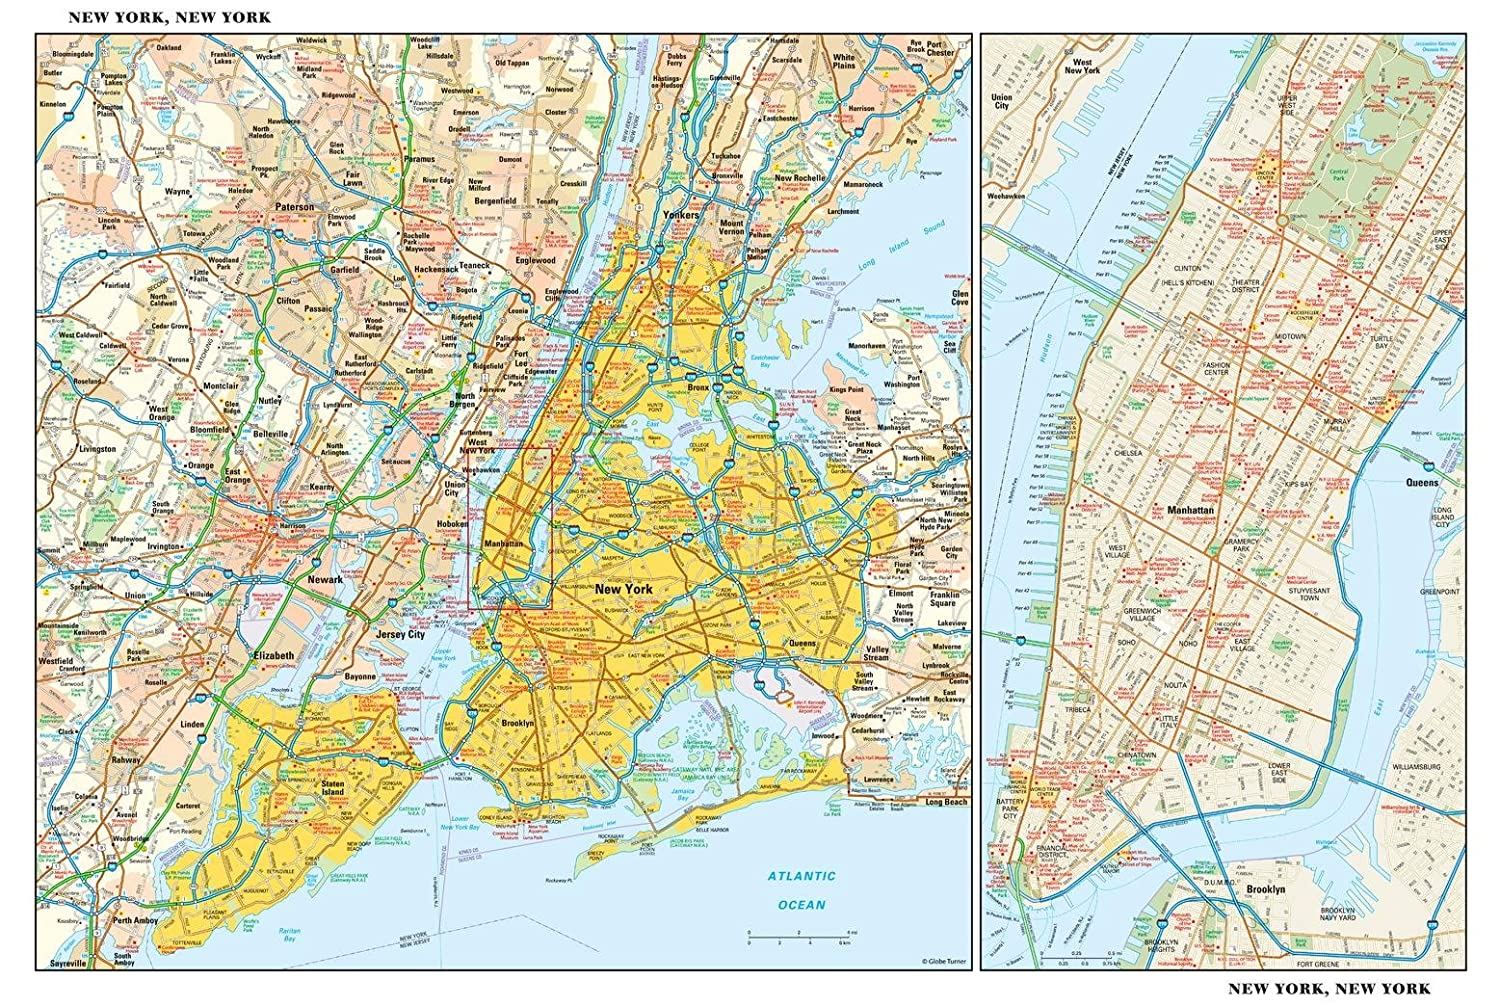 New York Wall Map 21.75 x 14.5 Paper New York